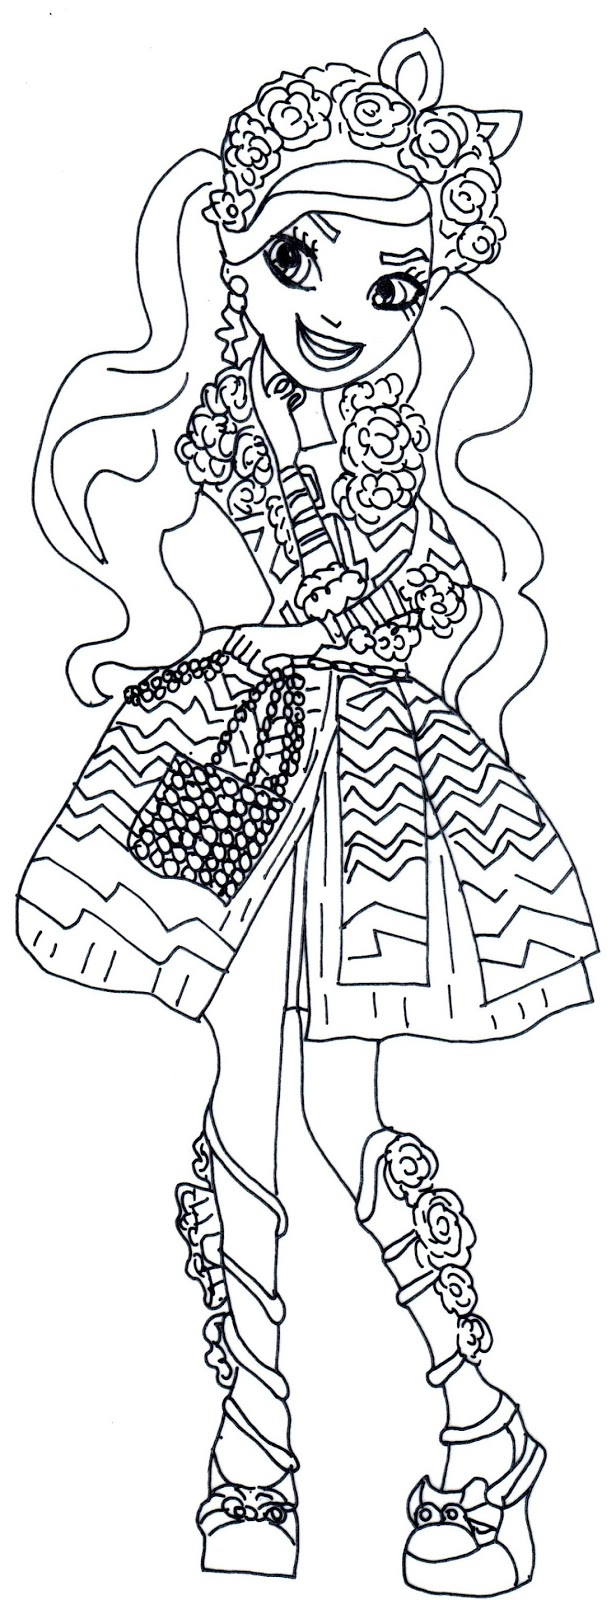 Ever after high coloring pictures - Free Printable Ever After High Coloring Pages Lizzie Hearts Eah Rh Pinterest Com Ever After High